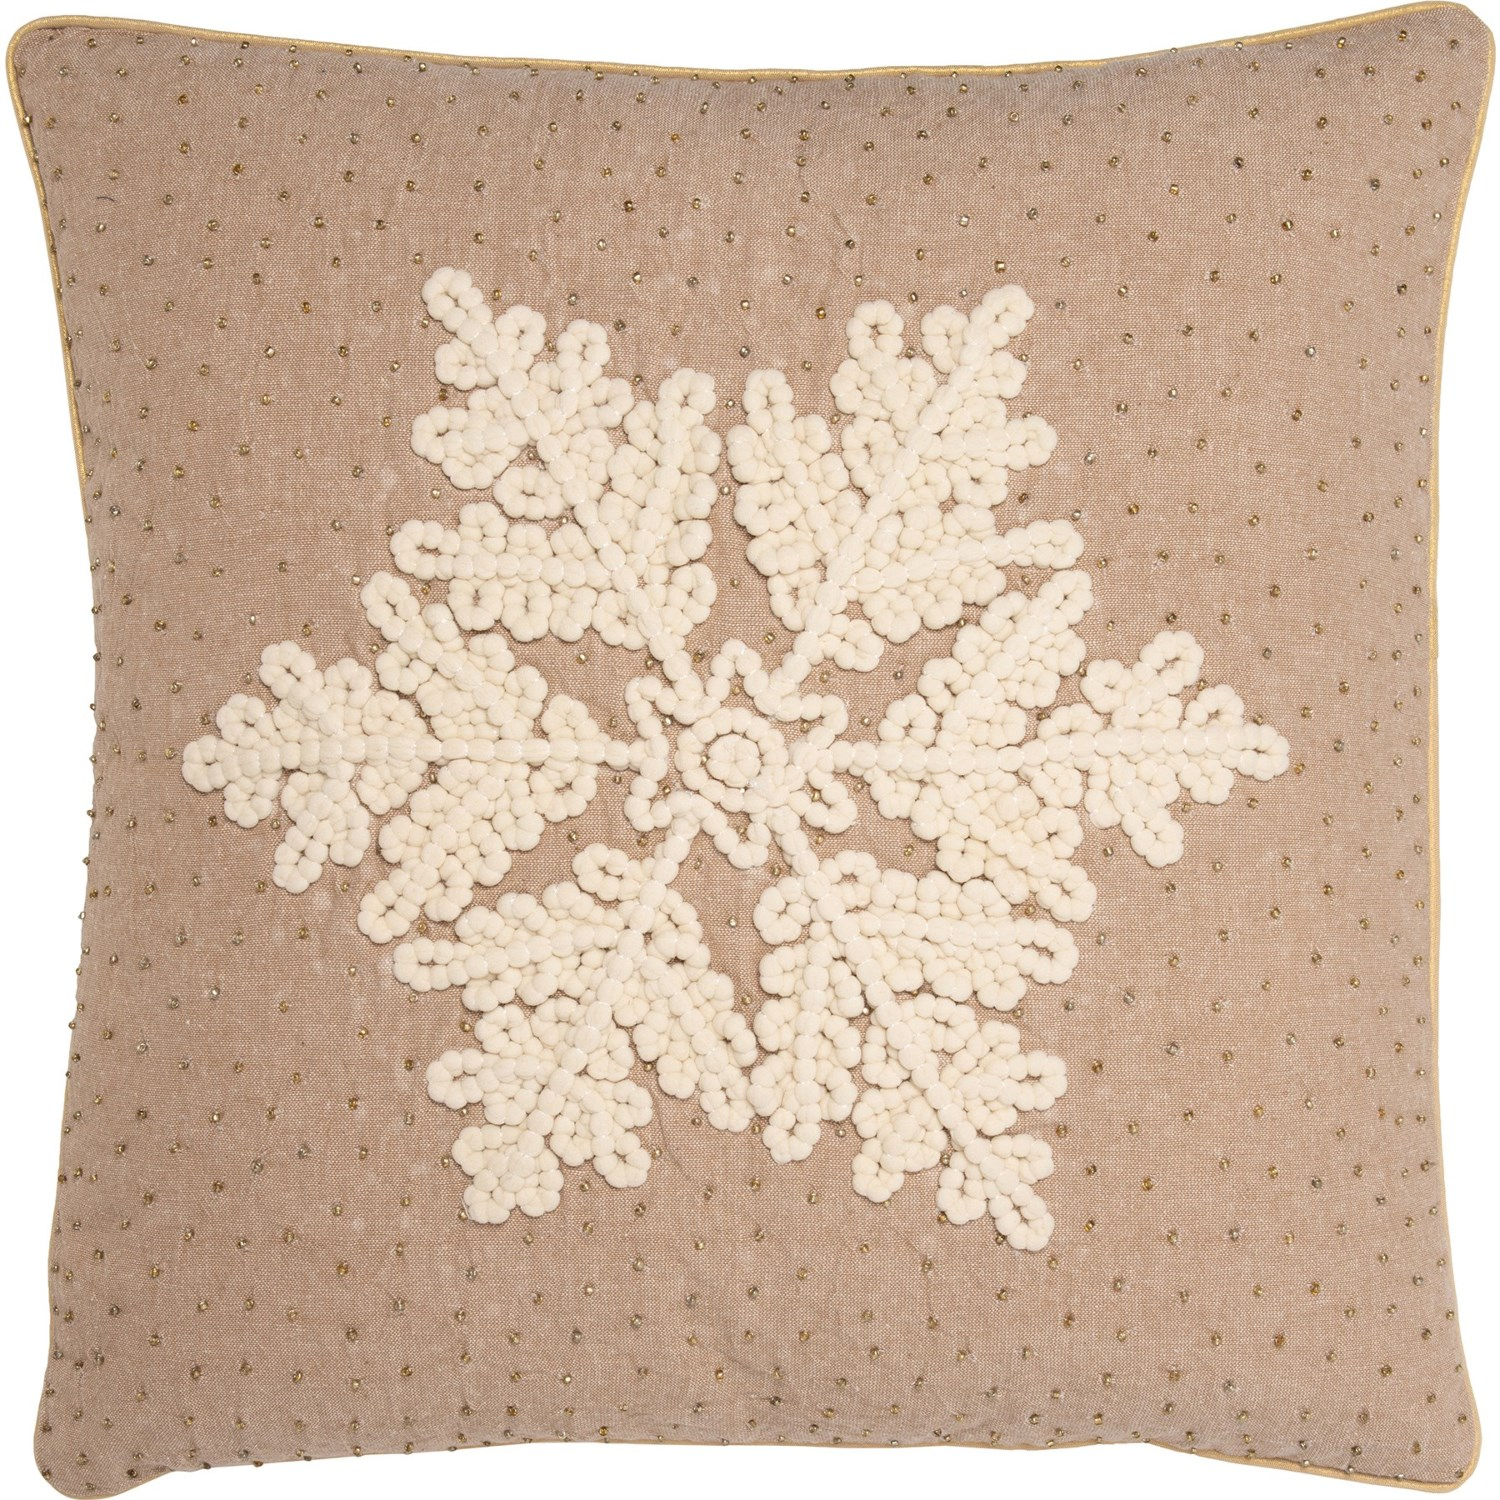 Peacock Alley Snowflake Beaded Throw Pillow 20x20 Feather Fill Beige Save 50